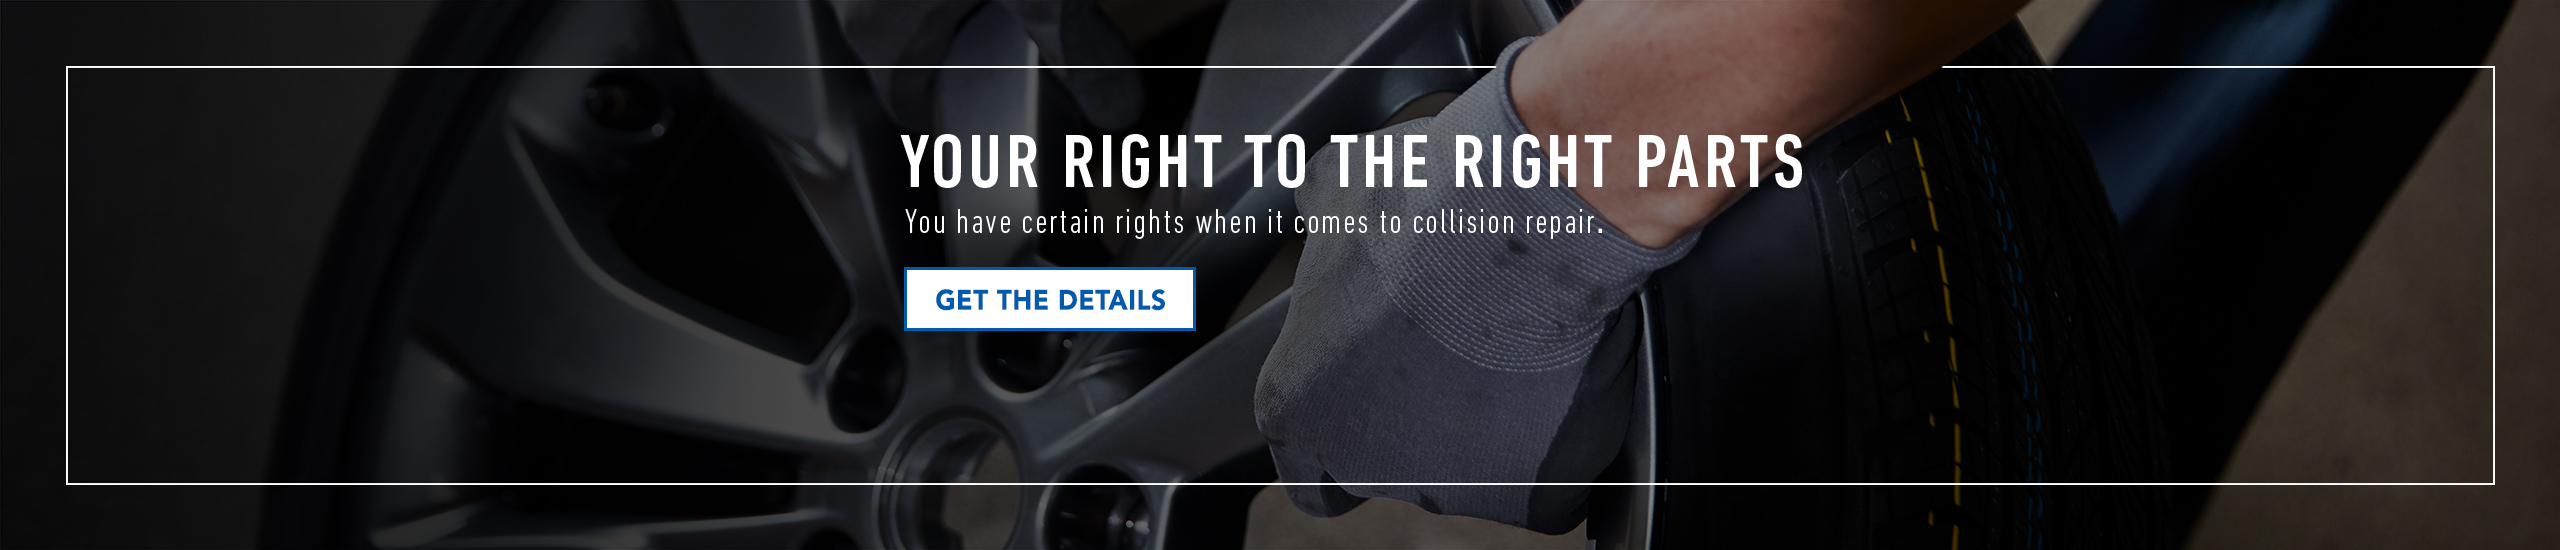 You have certain rights when it comes to collision repair, get the right GM Genuine Parts.